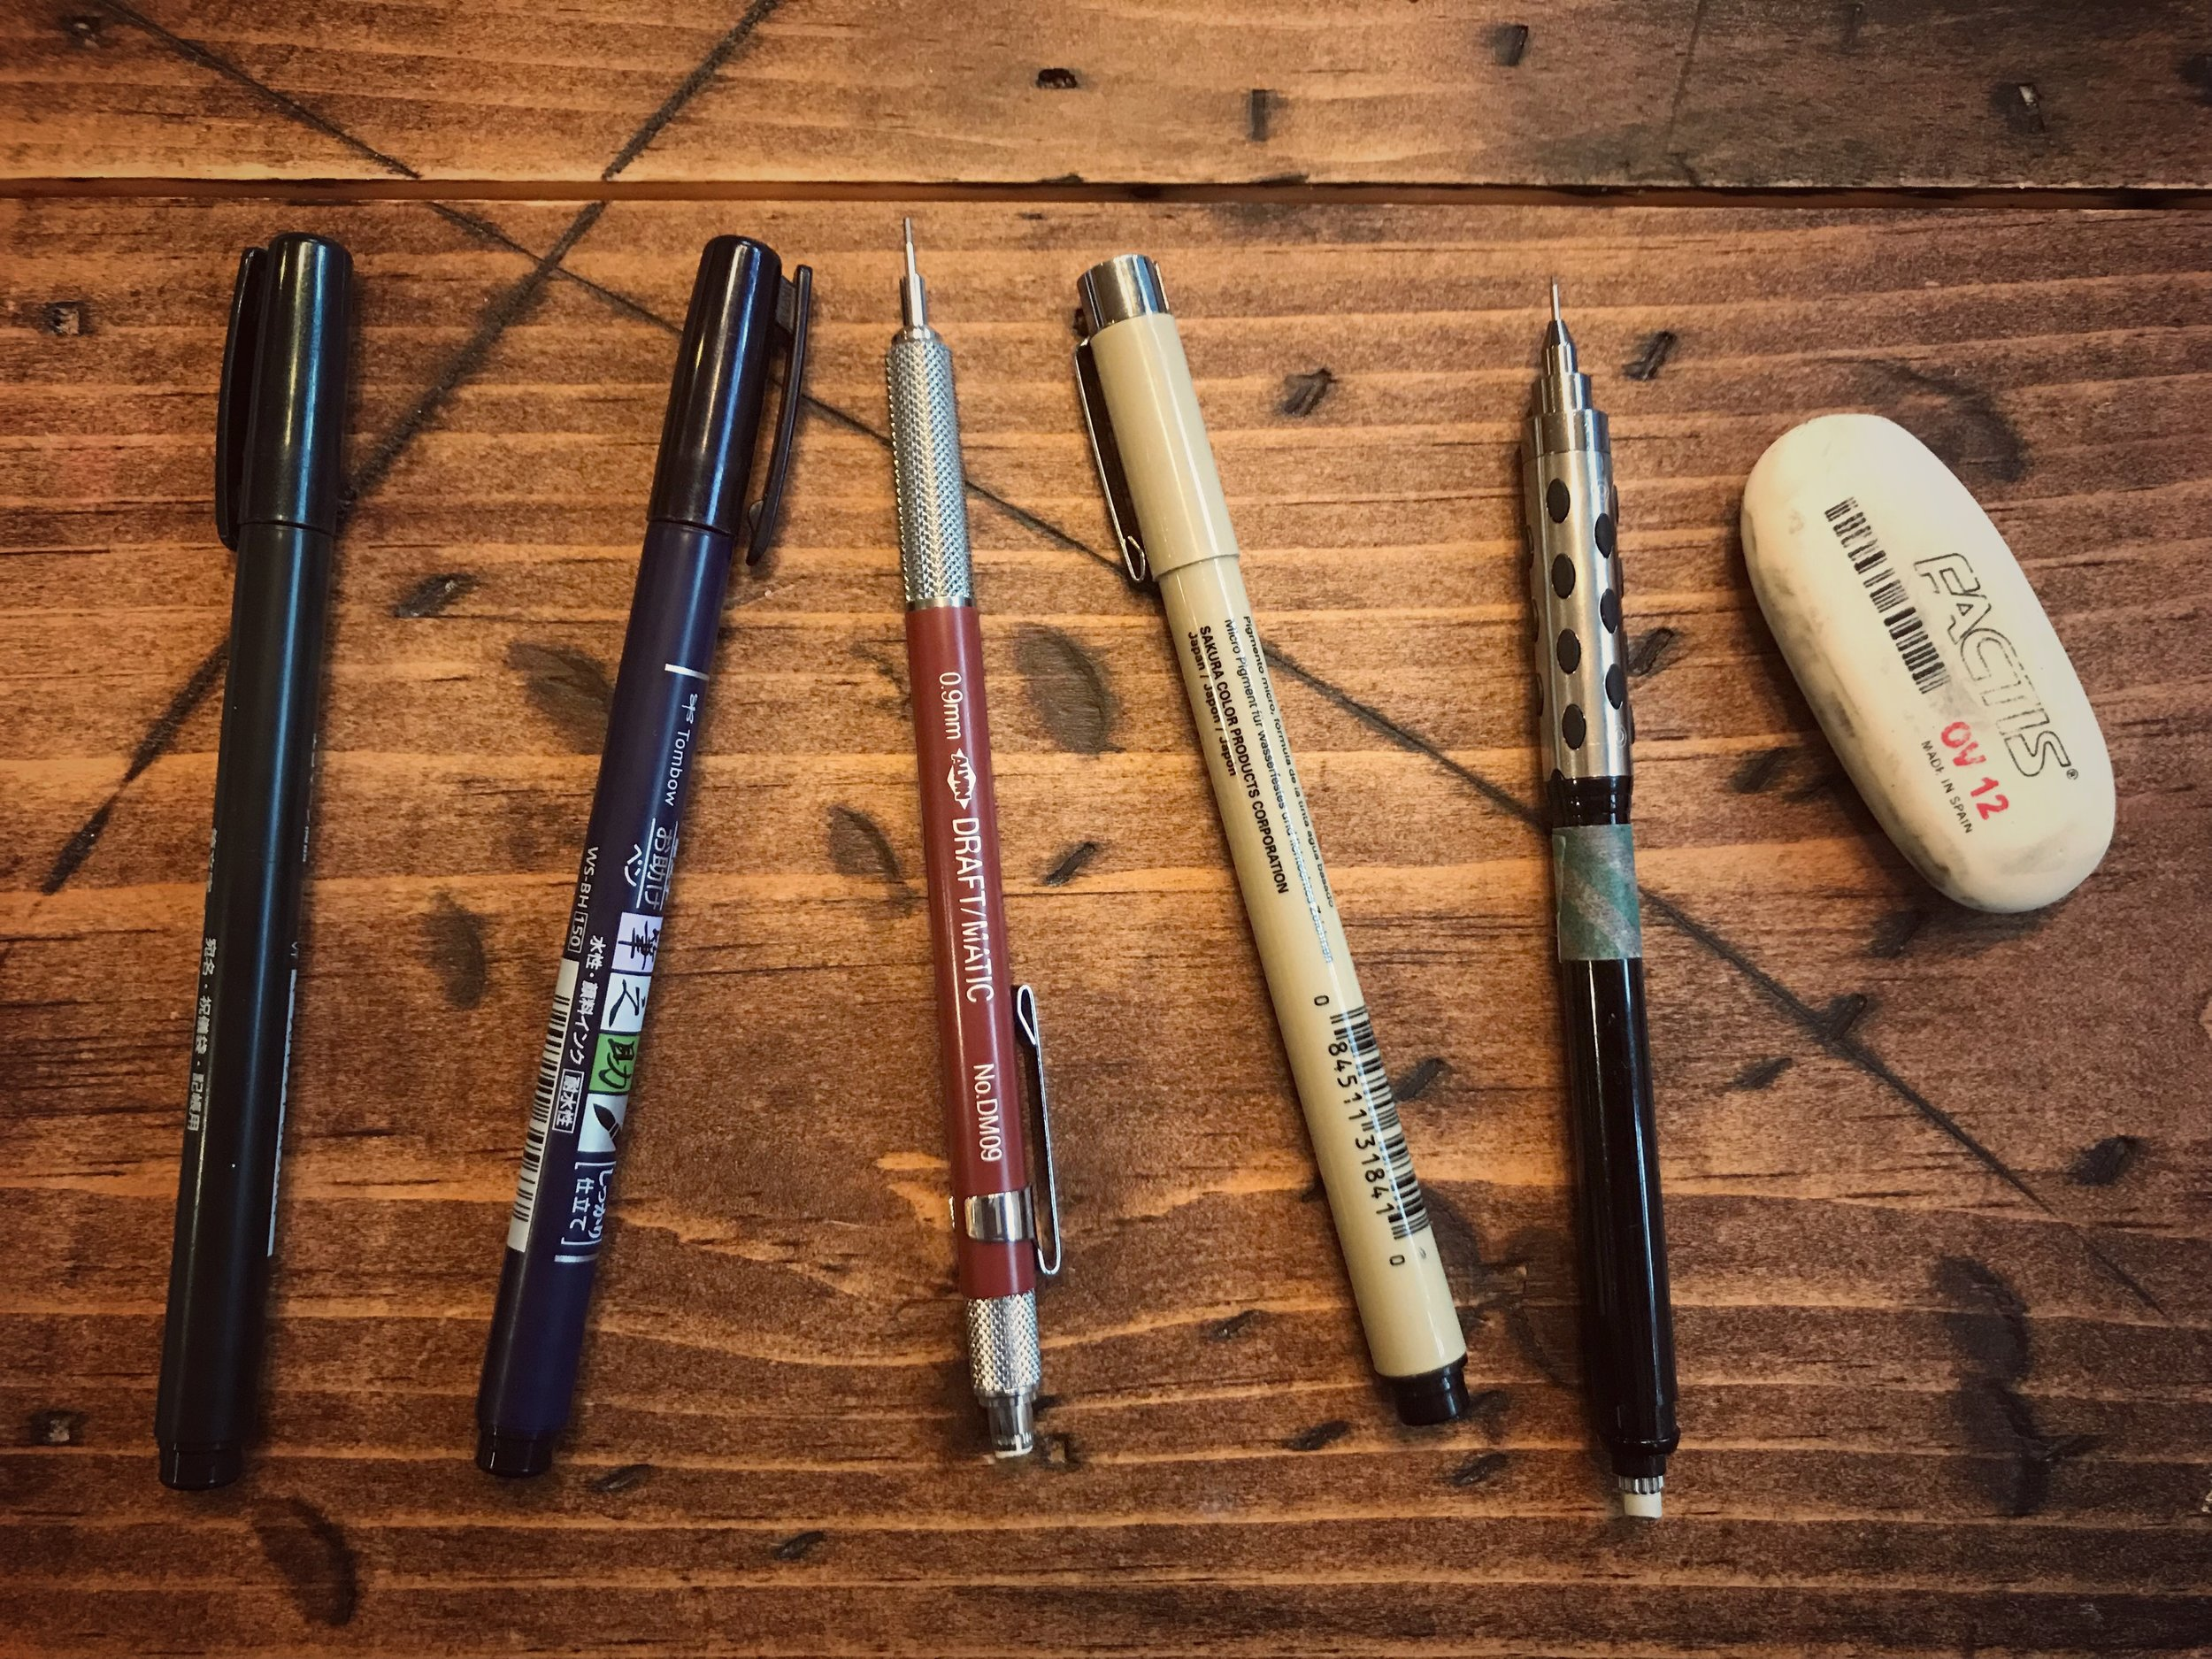 Some of my favorite go-to supplies.  Tombow brush pens ,  Draft-Matic Mechanical Pencil ,  Pigma Micron Pen ,  Pentel Mechanical Pencil ,  General's oval eraser .